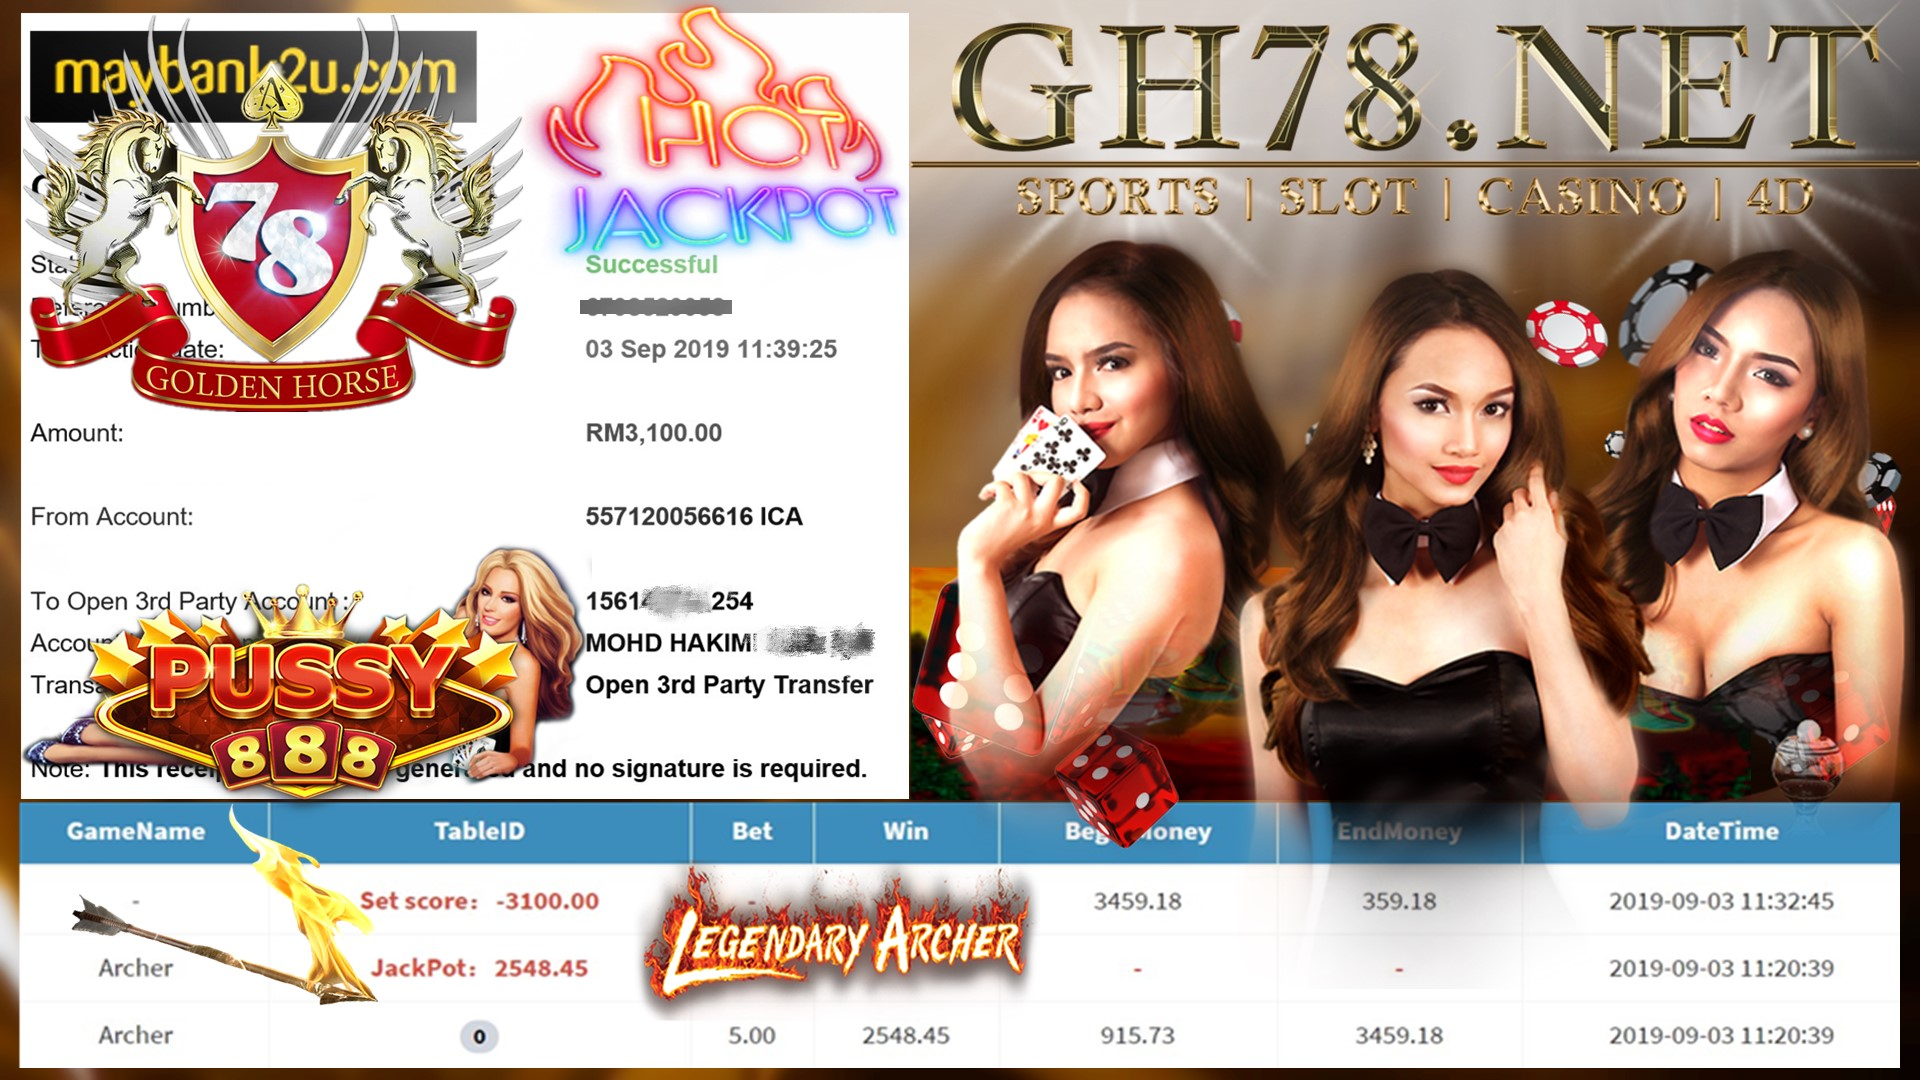 MEMBER MAIN GAME PUSSY888 FT.ARCHER MINTA OUT RM3,100